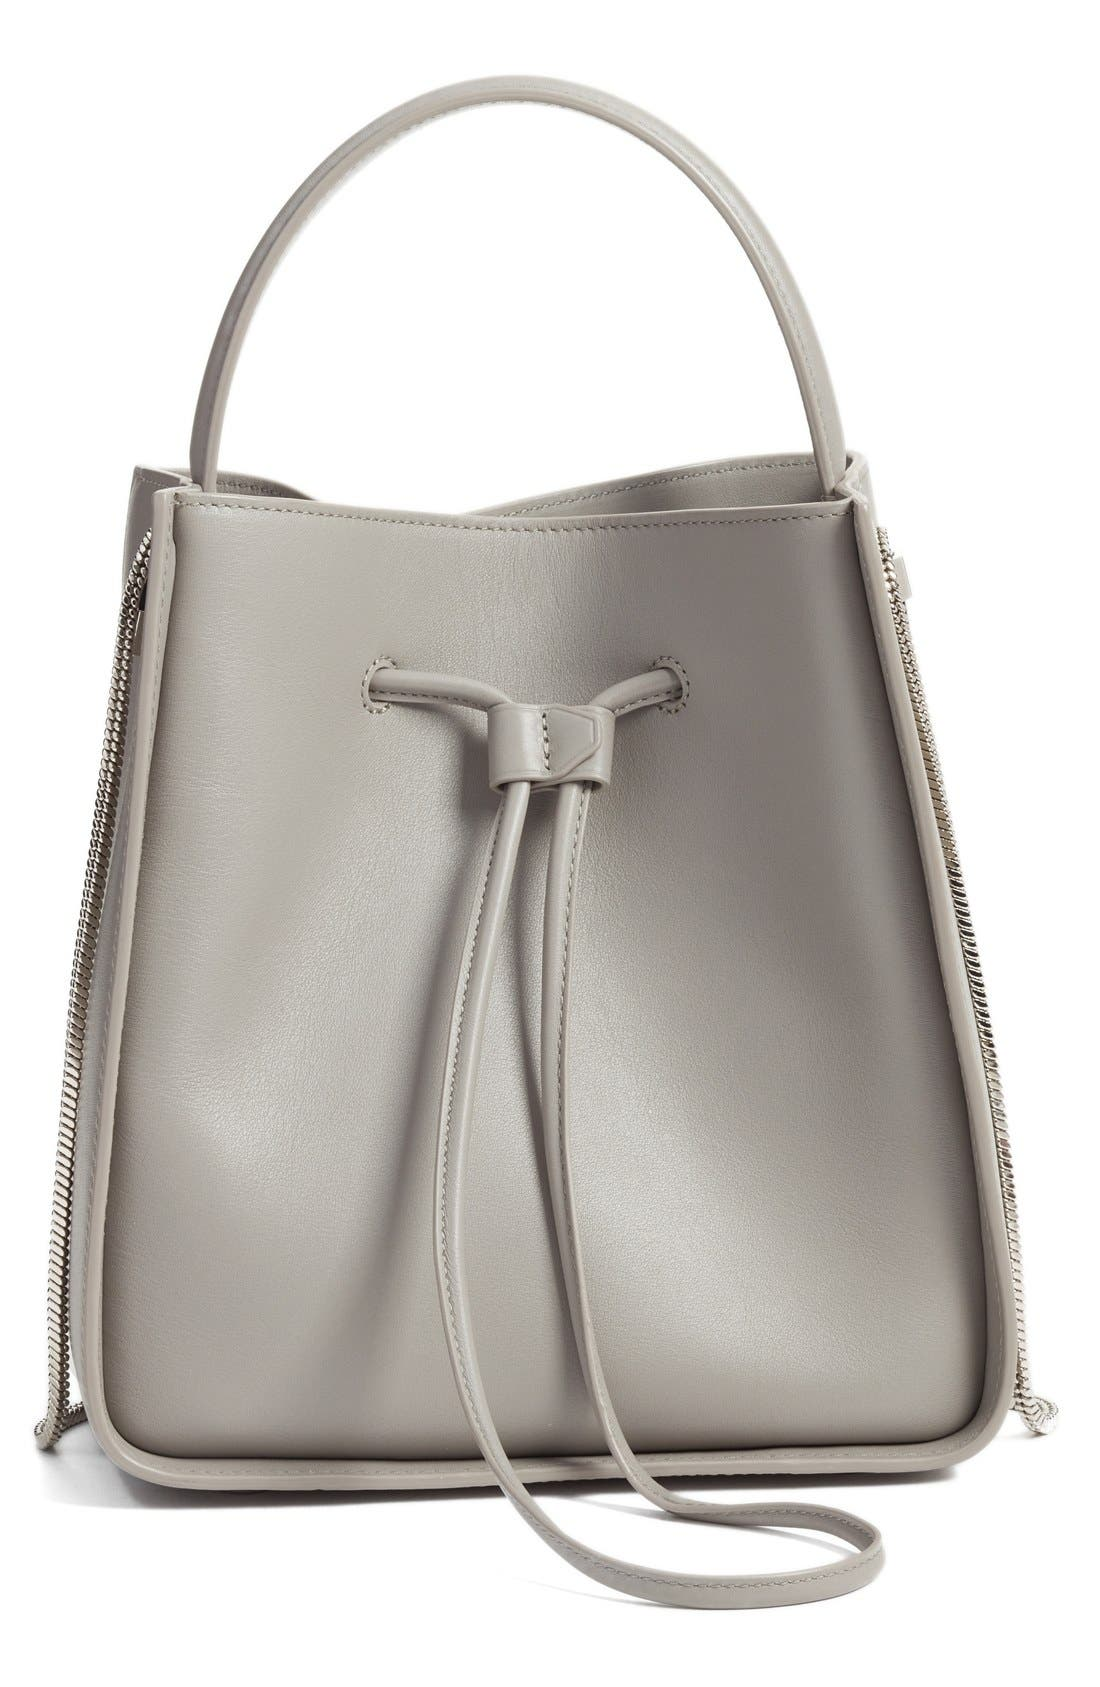 Alternate Image 1 Selected - 3.1 Phillip Lim Small Soleil Leather Bucket Bag